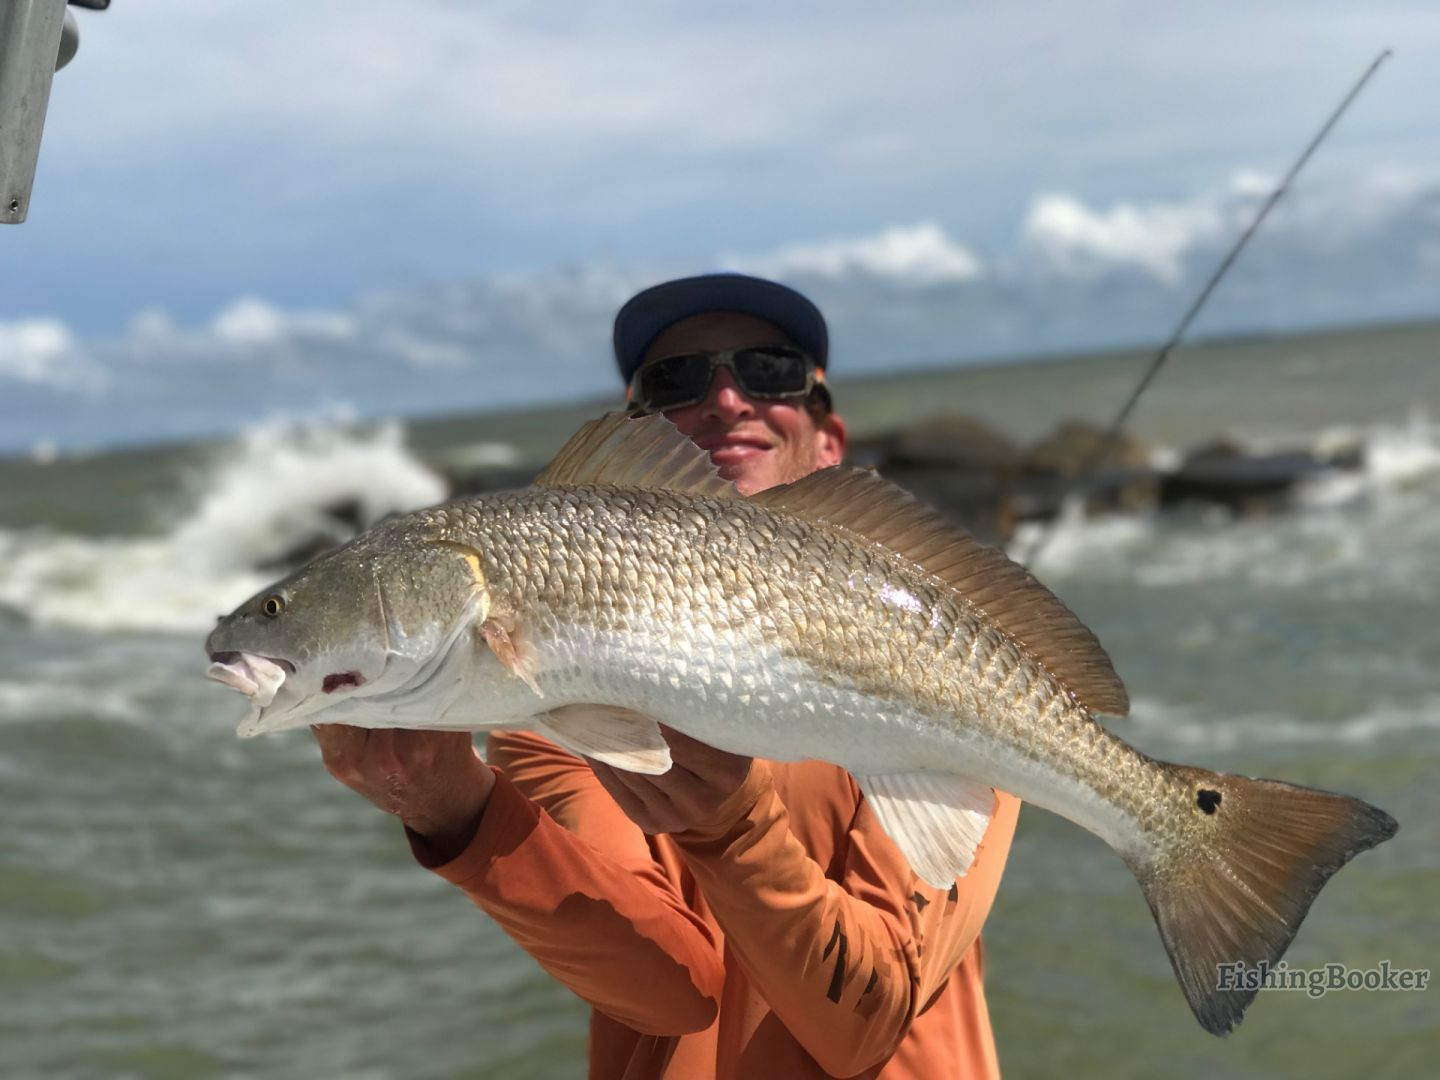 Lady angler holding a big Redfish she caught in Galveston.